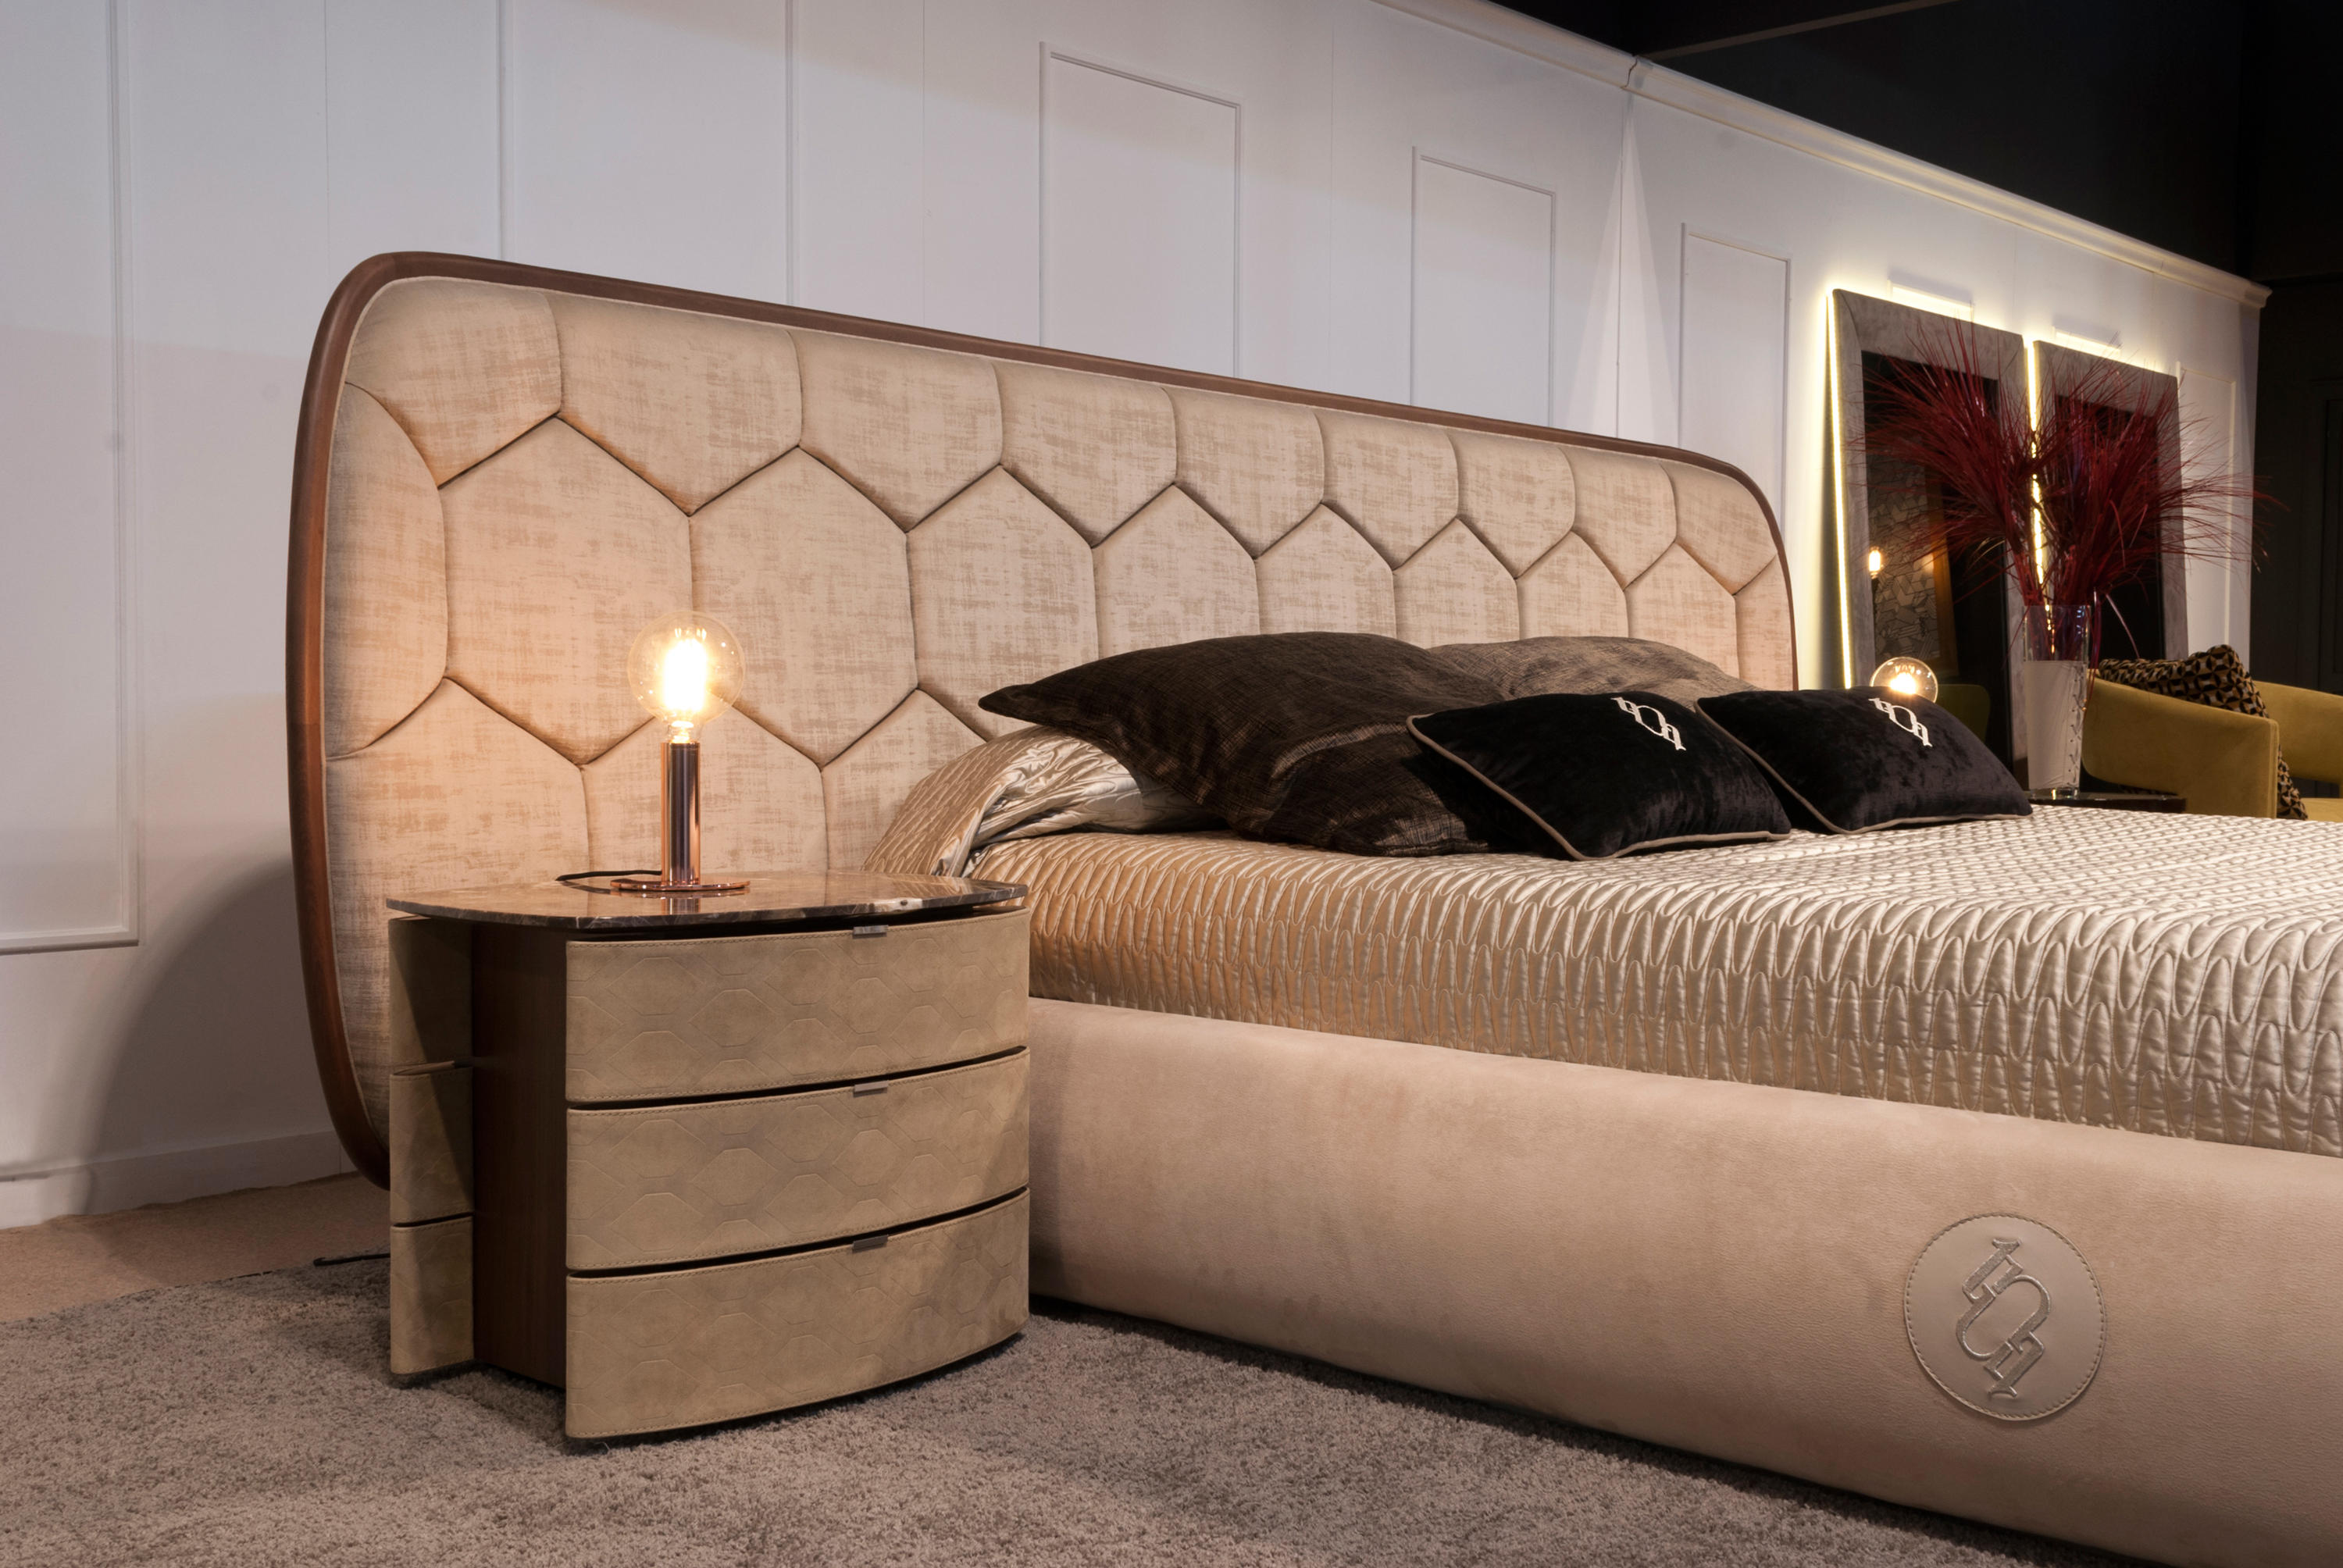 4228 21 Bed Beds From Tecni Nova Architonic